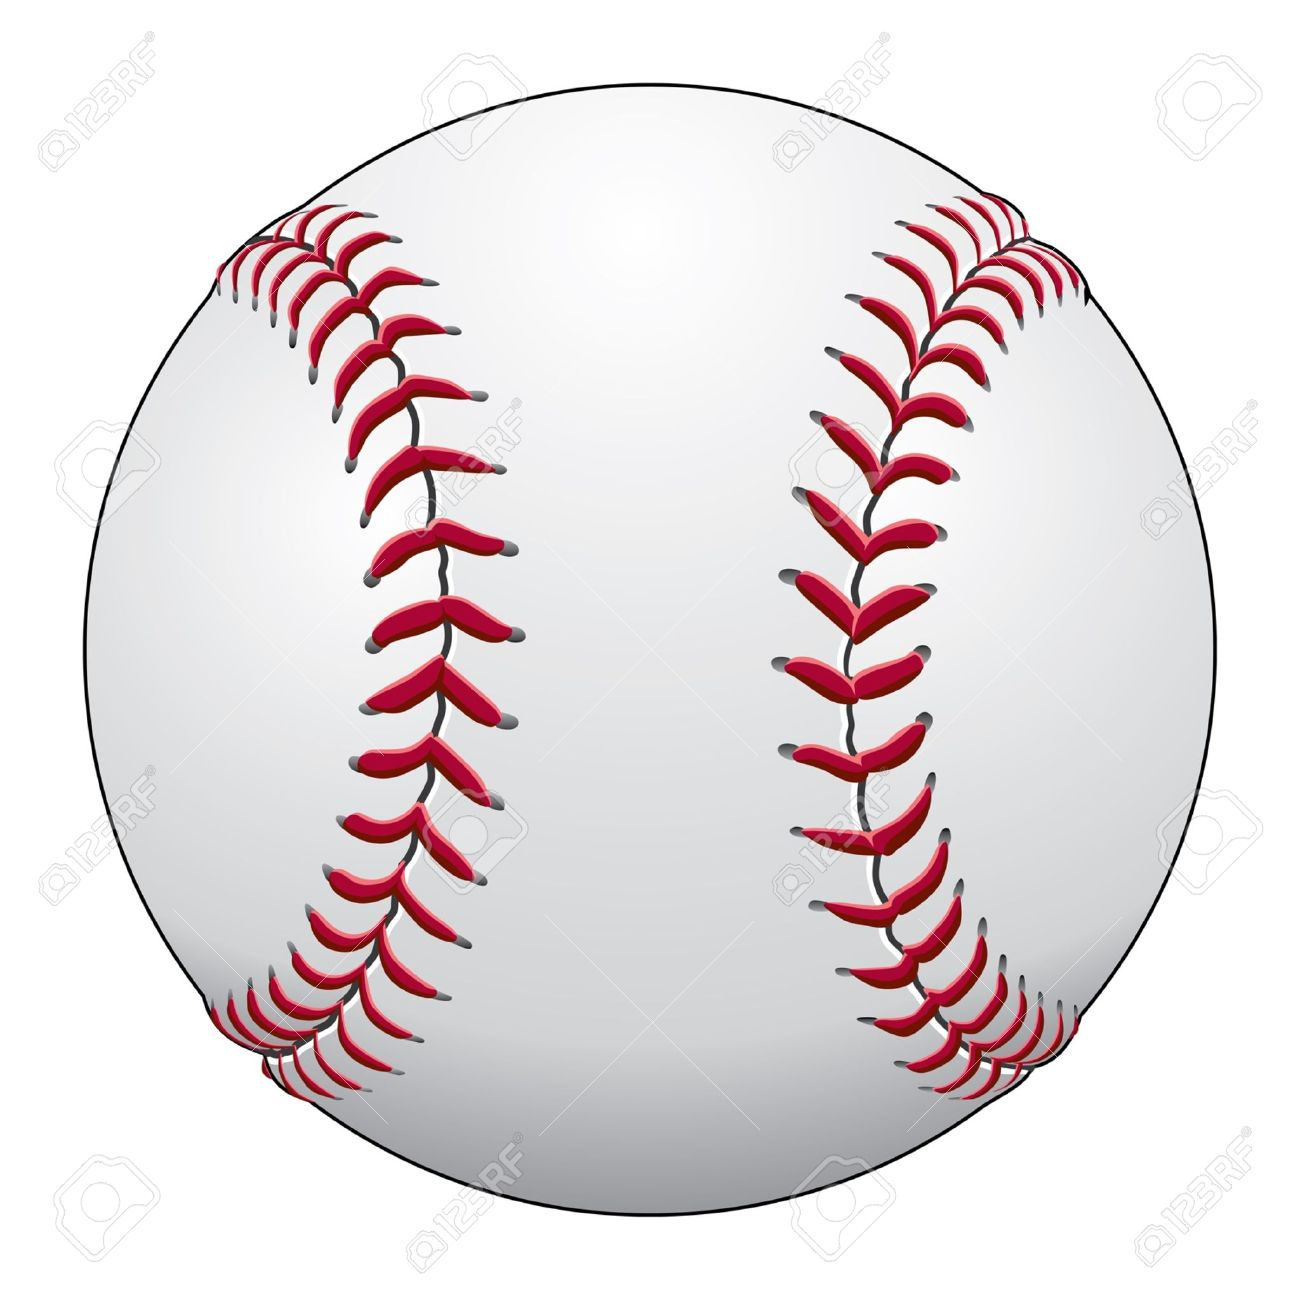 Baseball Is An Illustration Of A Baseball In White Leather With Royalty Free Cliparts Vectors And Stock Illustration Image 15245185